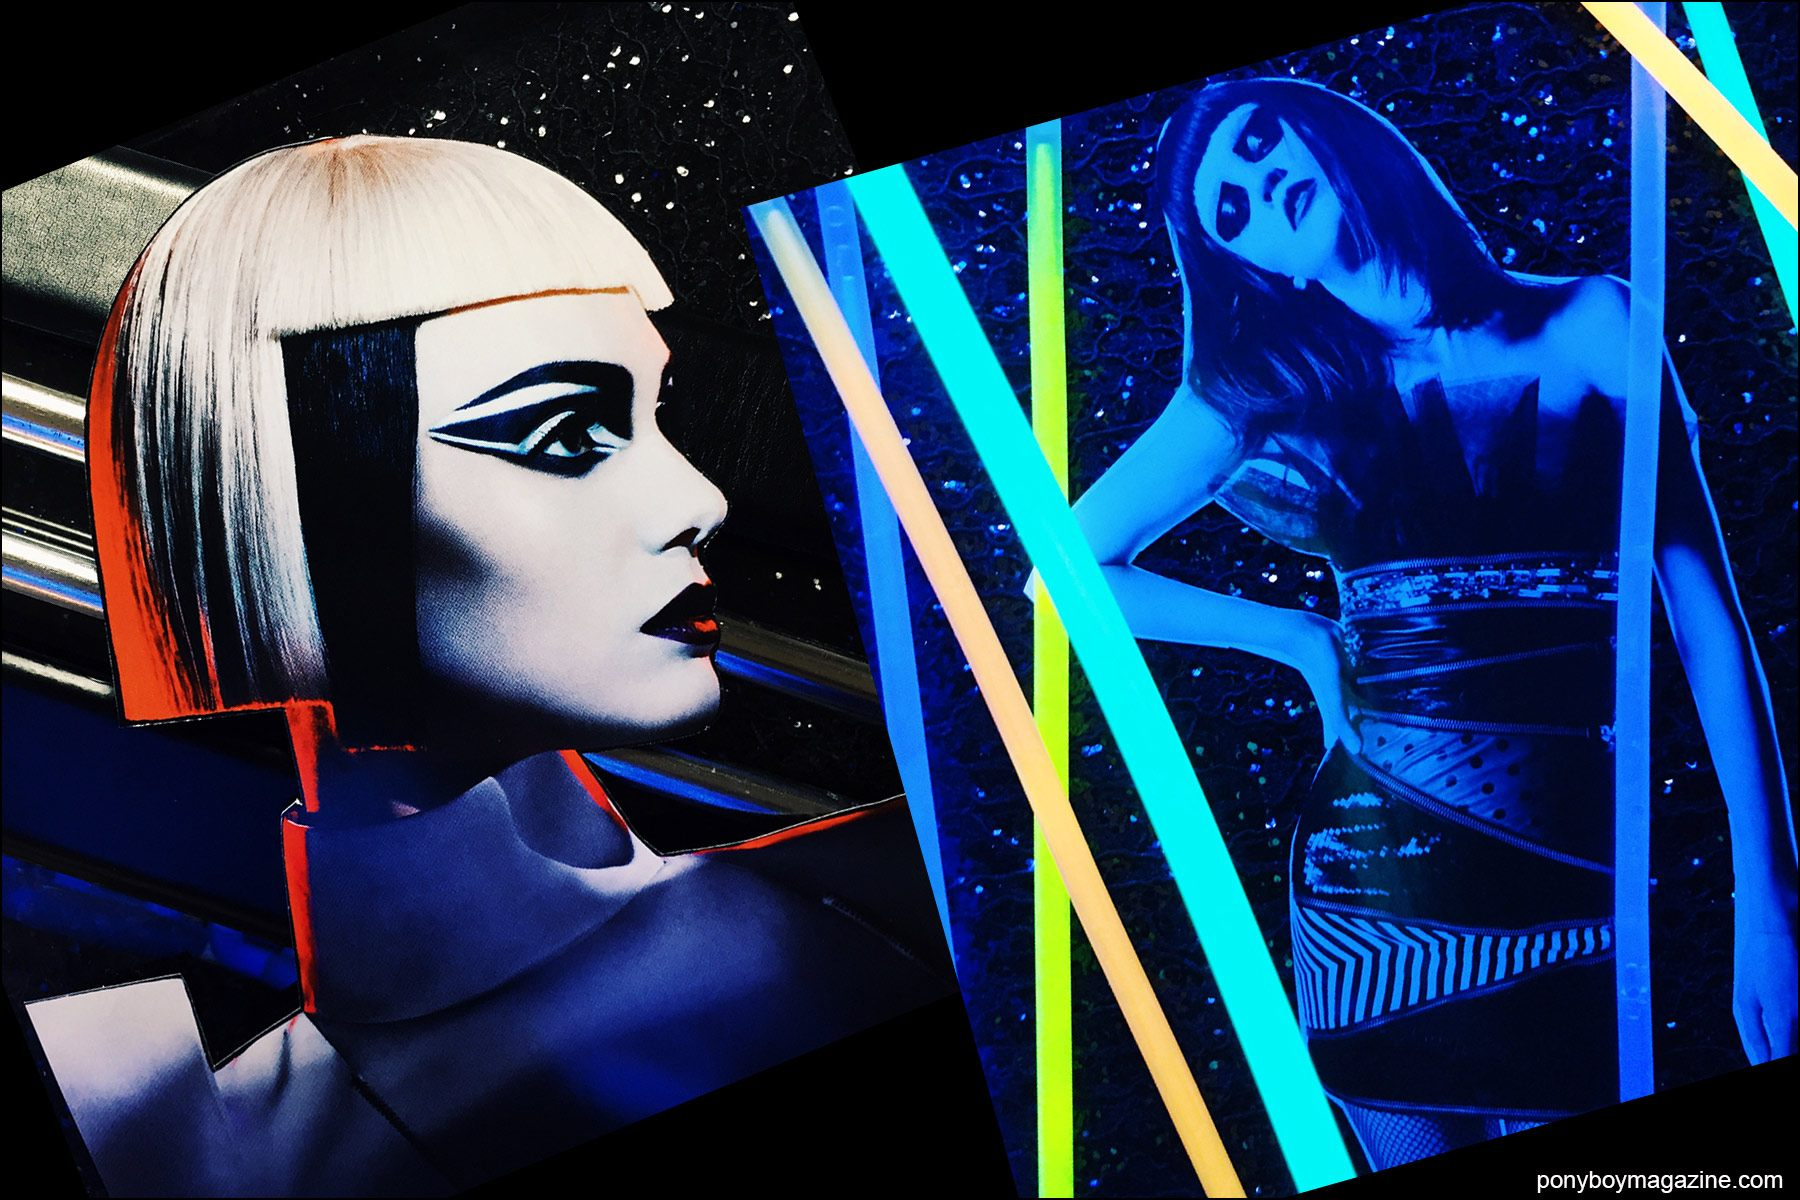 Collage artwork of Pat McGrath and Saint Laurent images by Patrick Keohane for RS Theory. Ponyboy magazine NY.